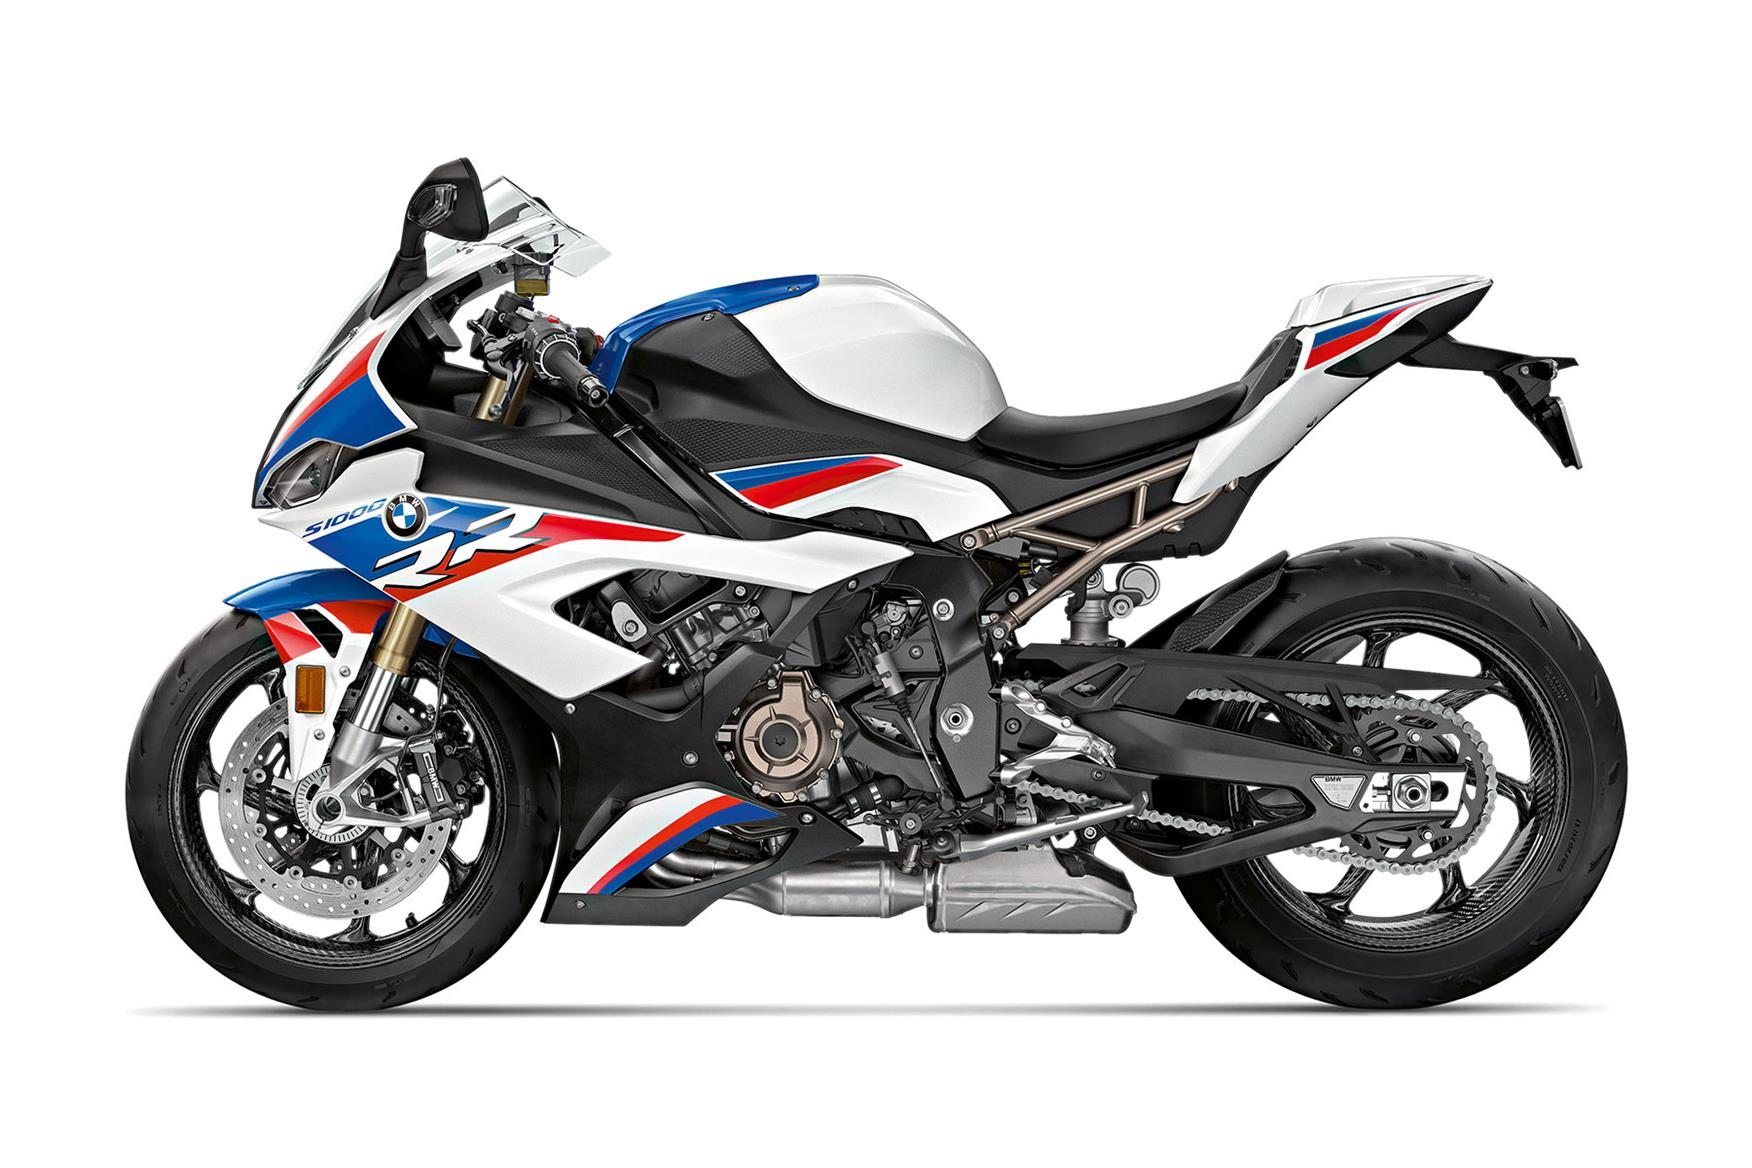 2019 BMW S1000RR superbike review